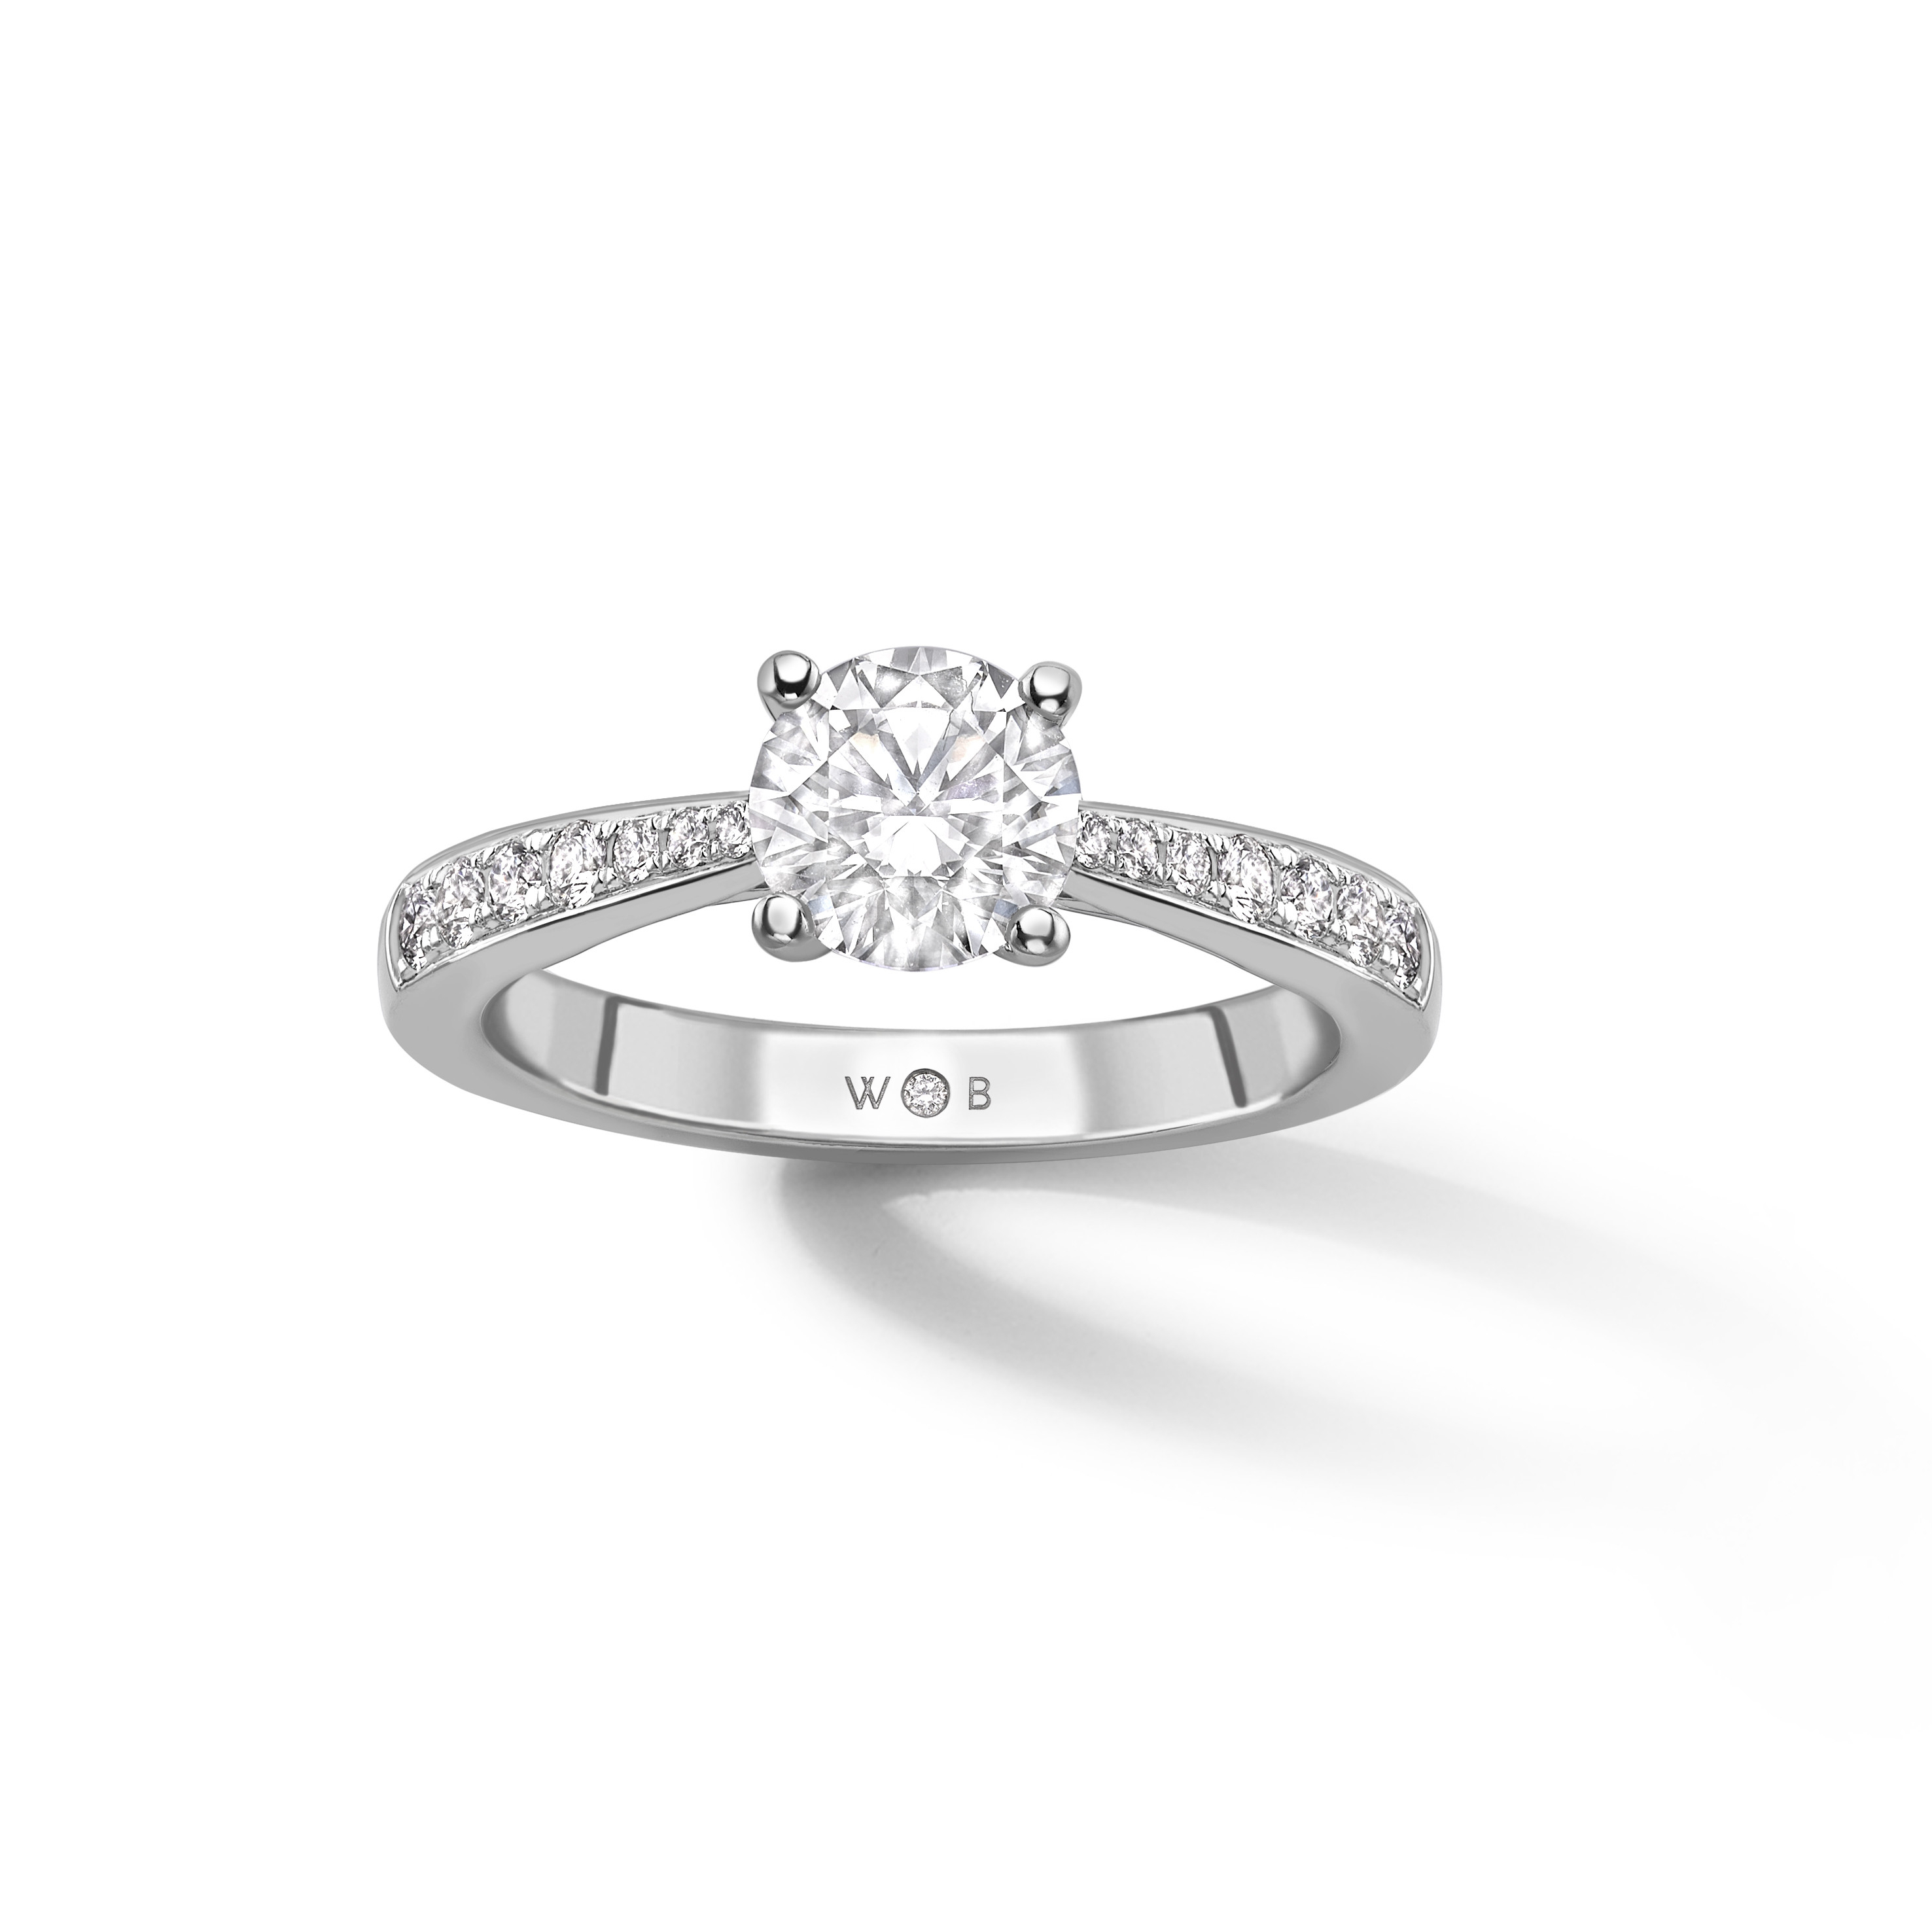 Brilliant Cut Diamond Solitaire Engagement Ring Within Brilliant Love Diamond Engagement Rings (View 9 of 25)